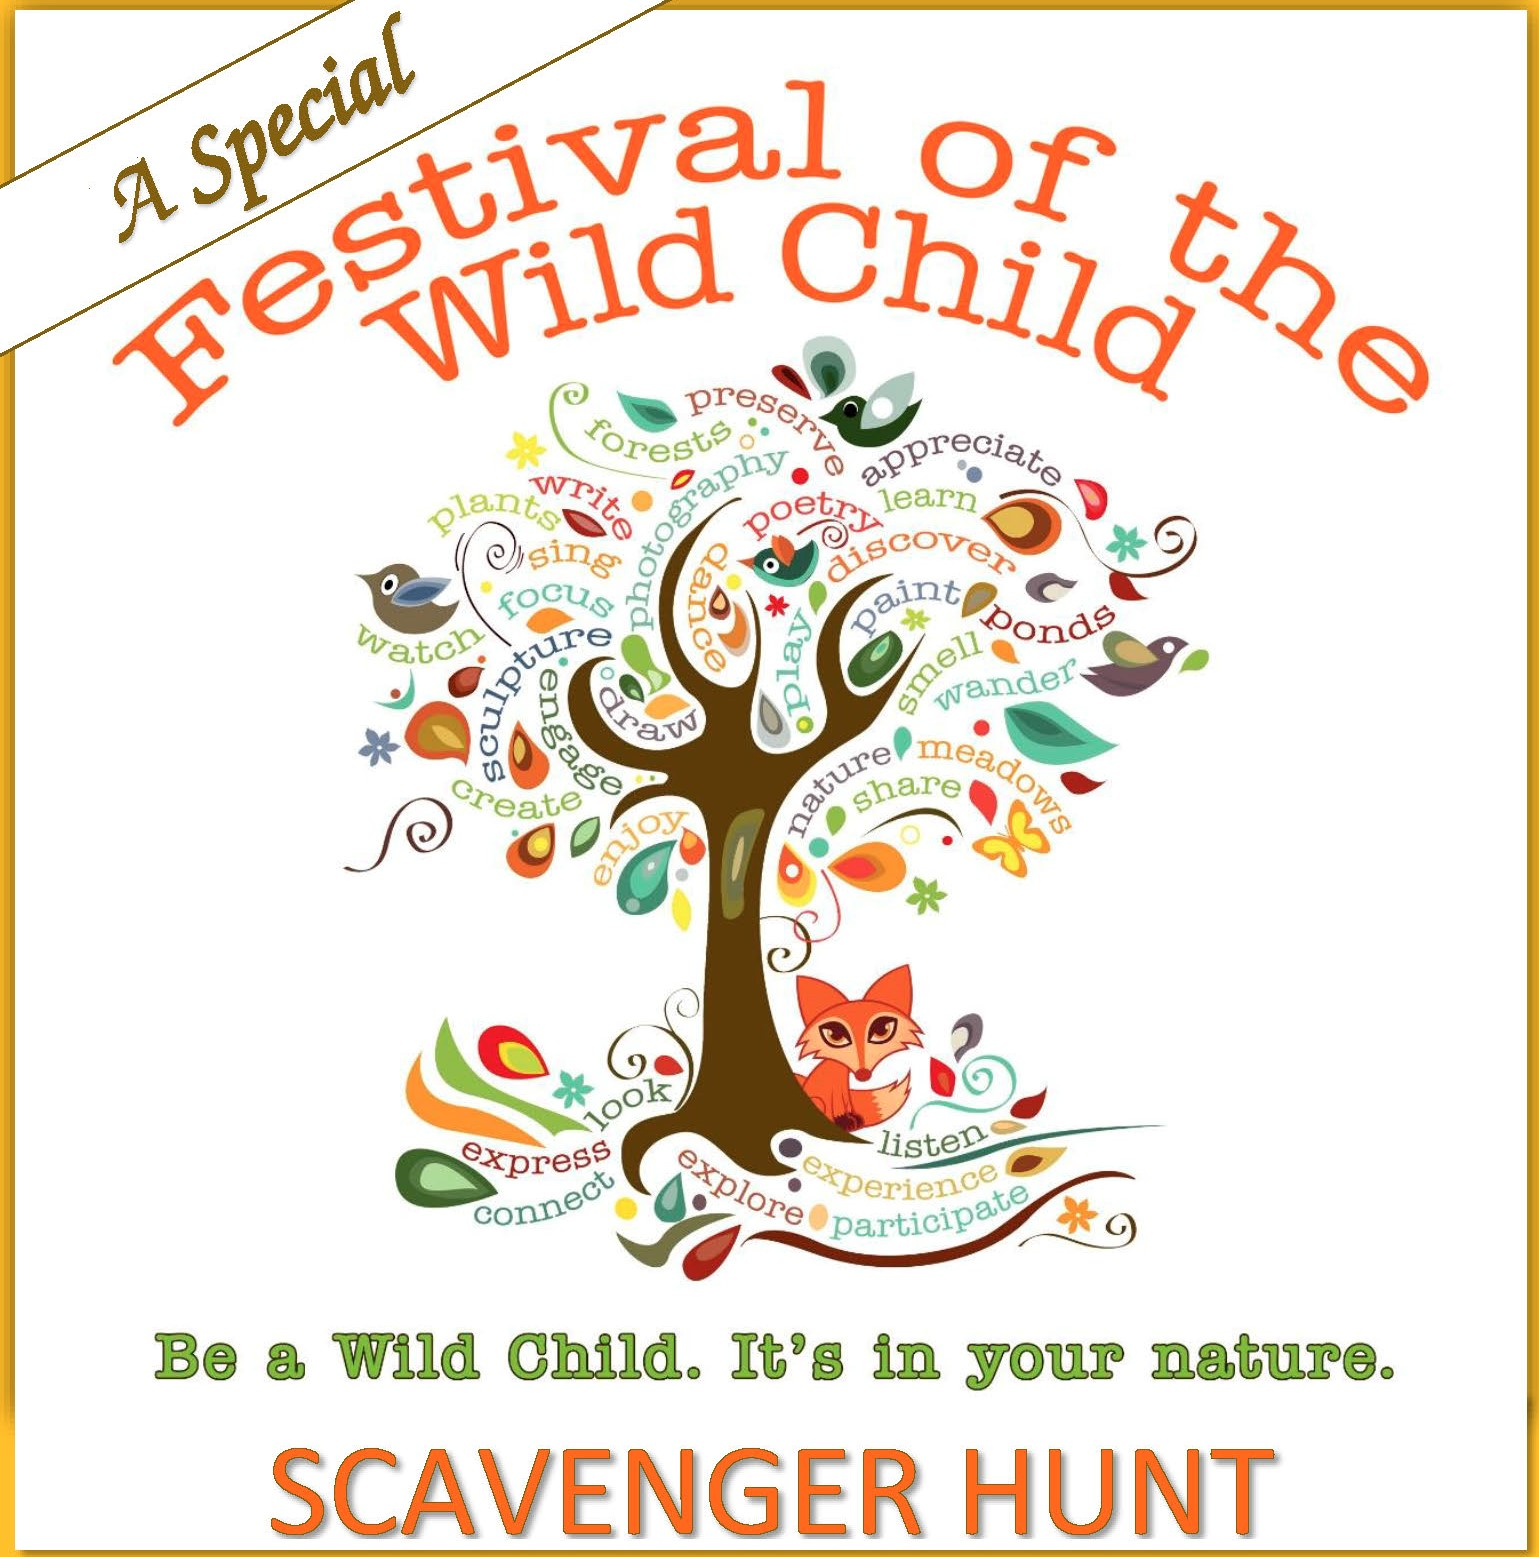 A Special SCAVENGER HUNT Edition of the FESTIVAL OF THE WILD CHILD - Sunday, 30 August